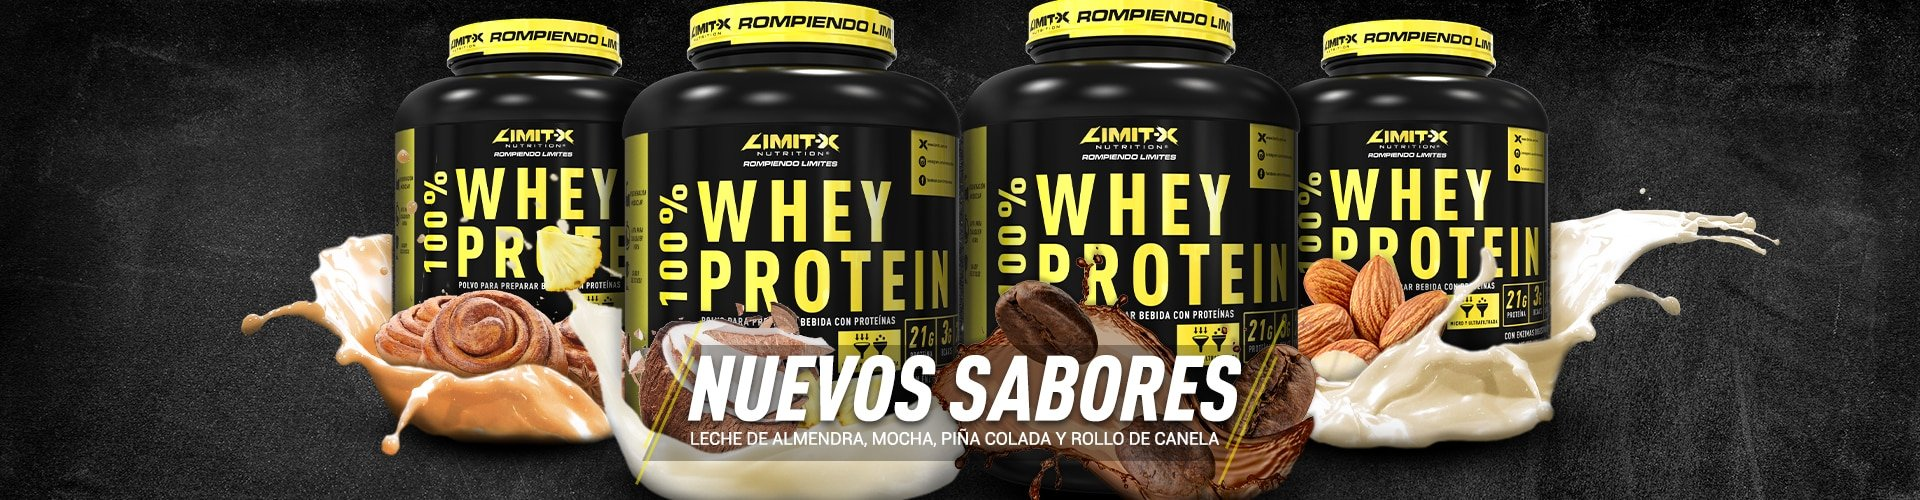 //www.limitx.com.mx/wp-content/uploads/2018/09/BANNER-100-WHEY-SABORES-2.jpg